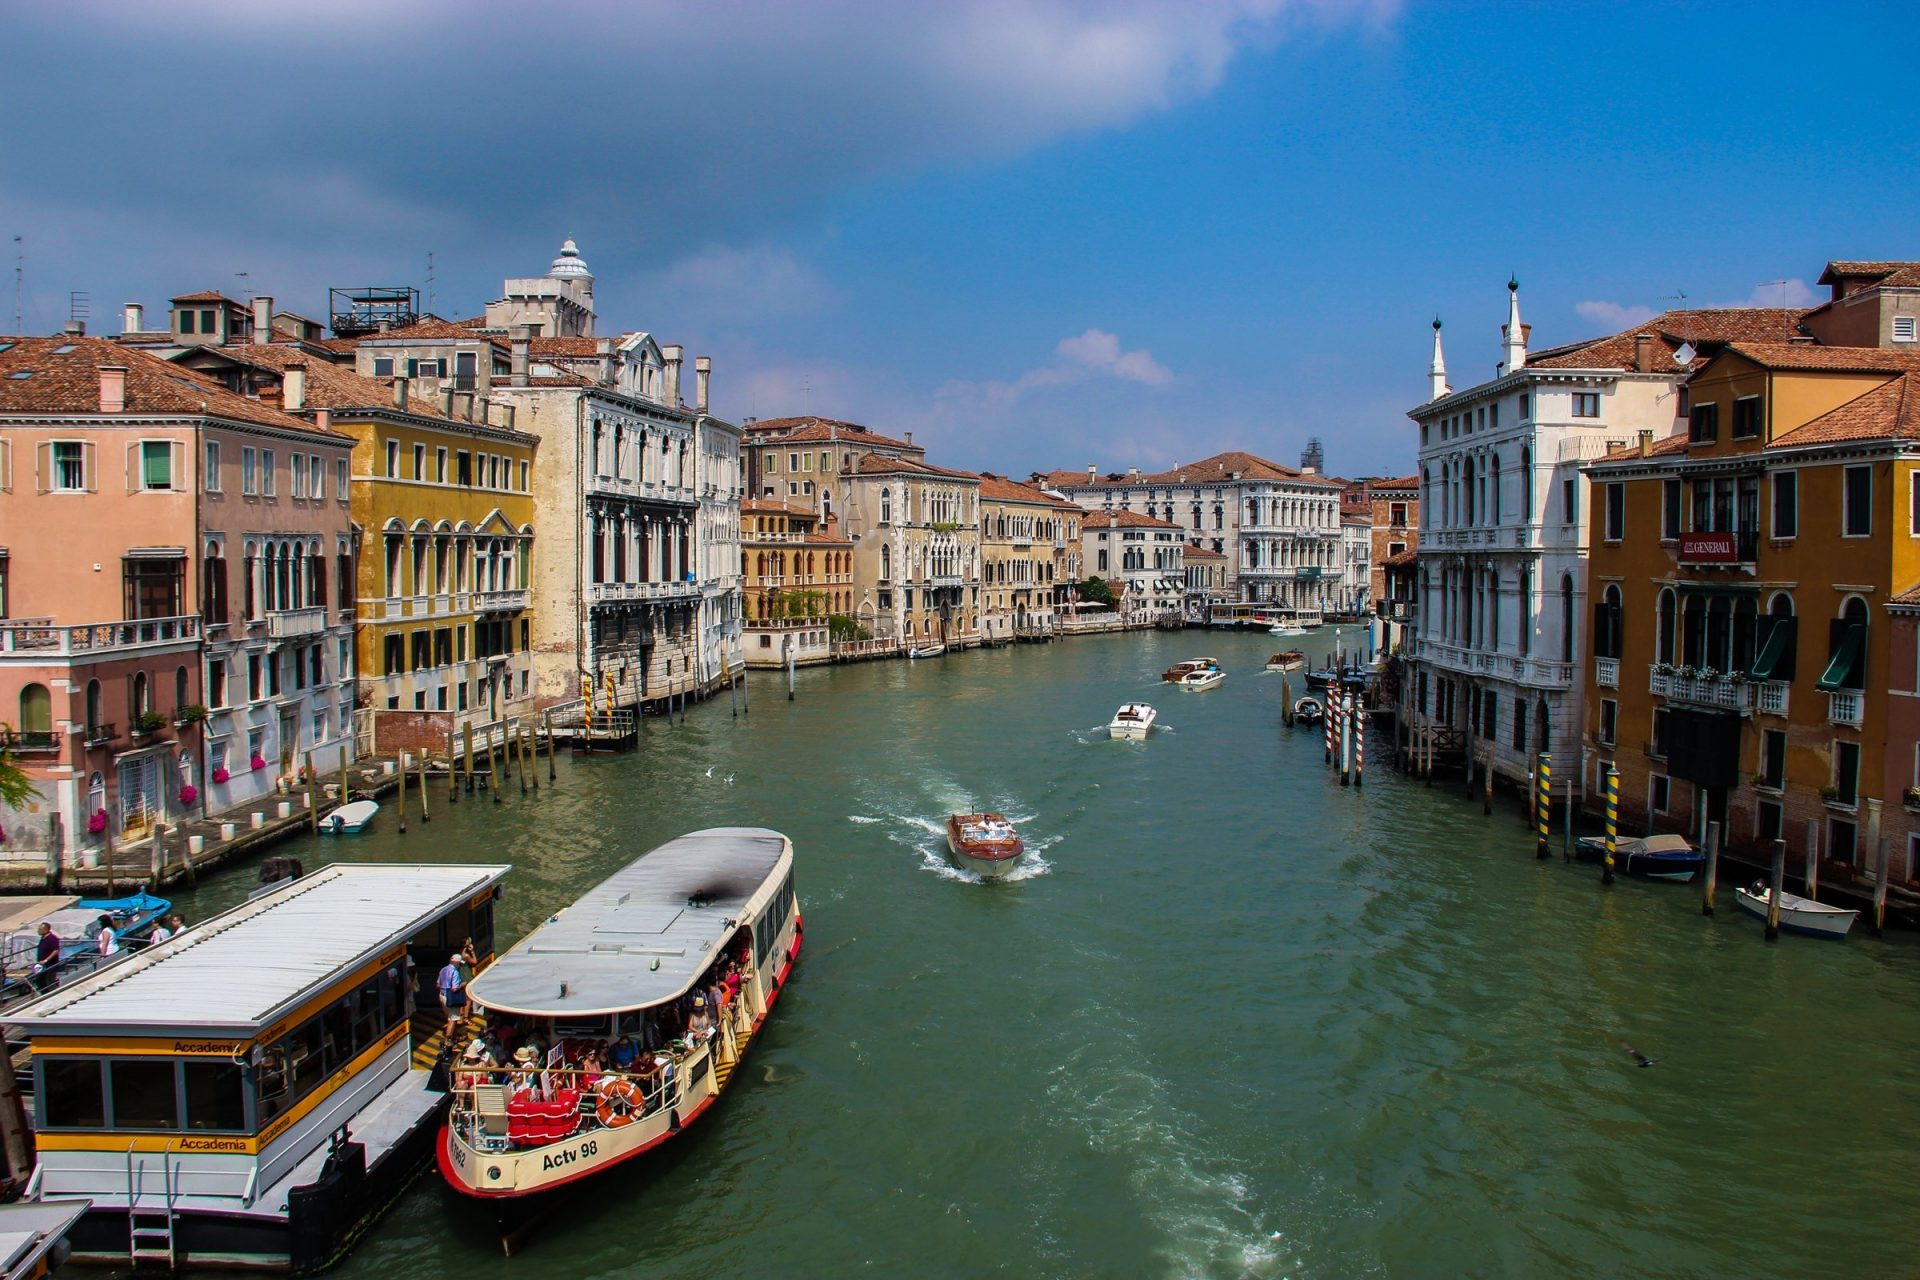 Vaporetto And Boats In Venice Canal